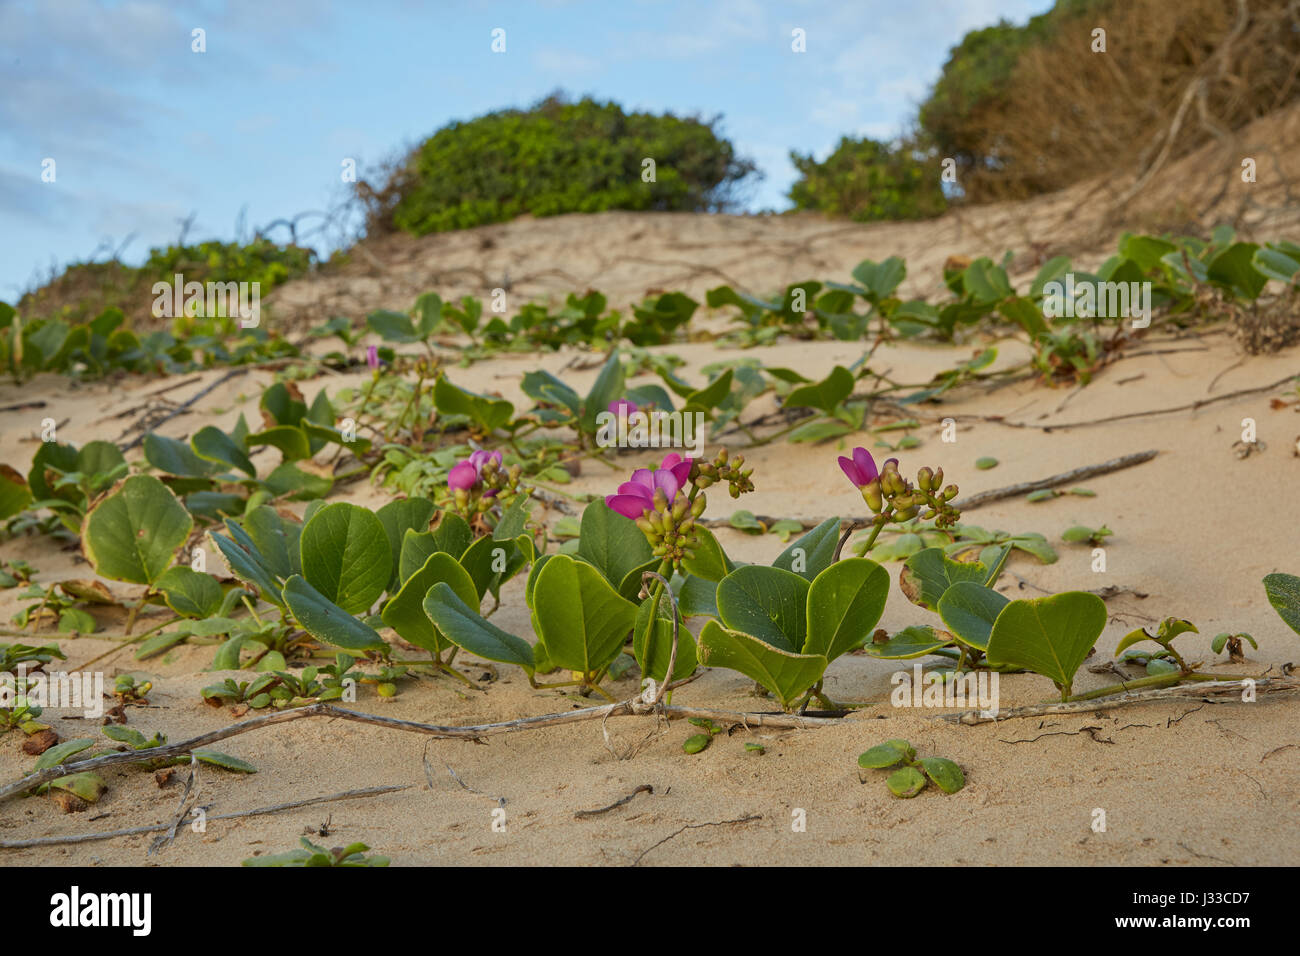 Dunes and vegetation at the Indian Ocean in iSimangaliso-Wetland Park, South Africa, Africa - Stock Image